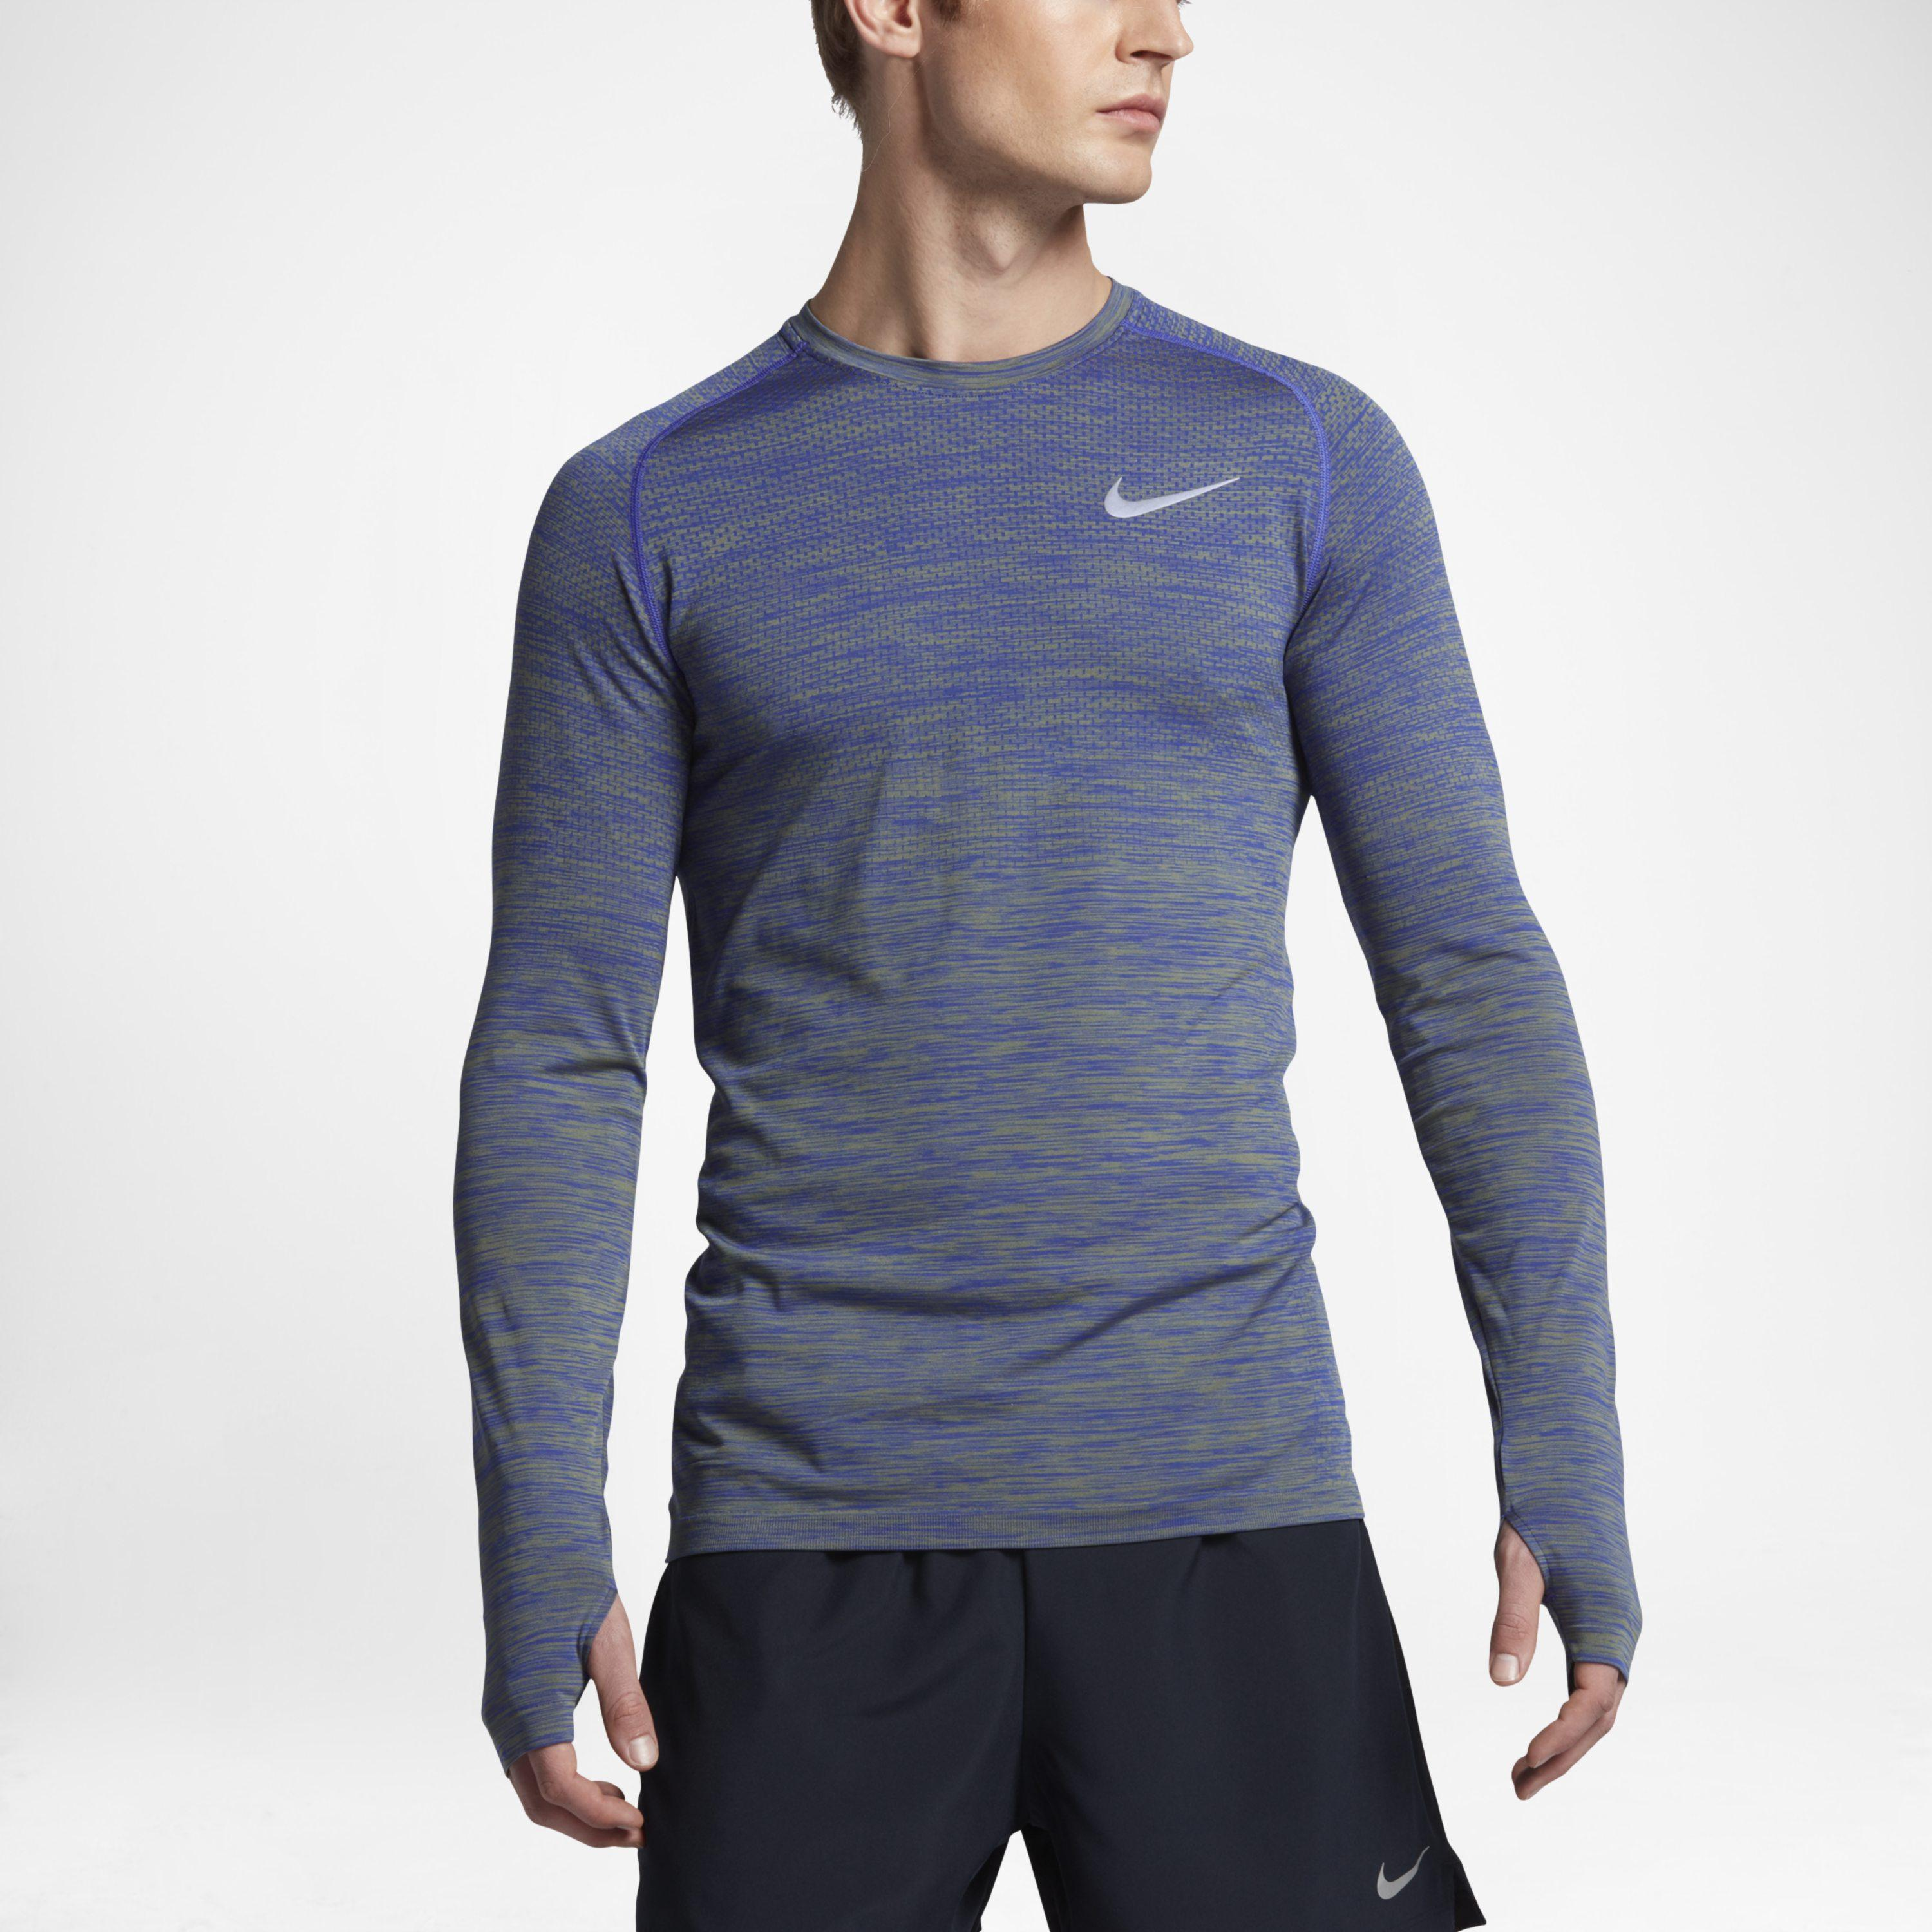 5d8120db Nike Dri Fit Long Sleeve Running Shirts – EDGE Engineering and ...